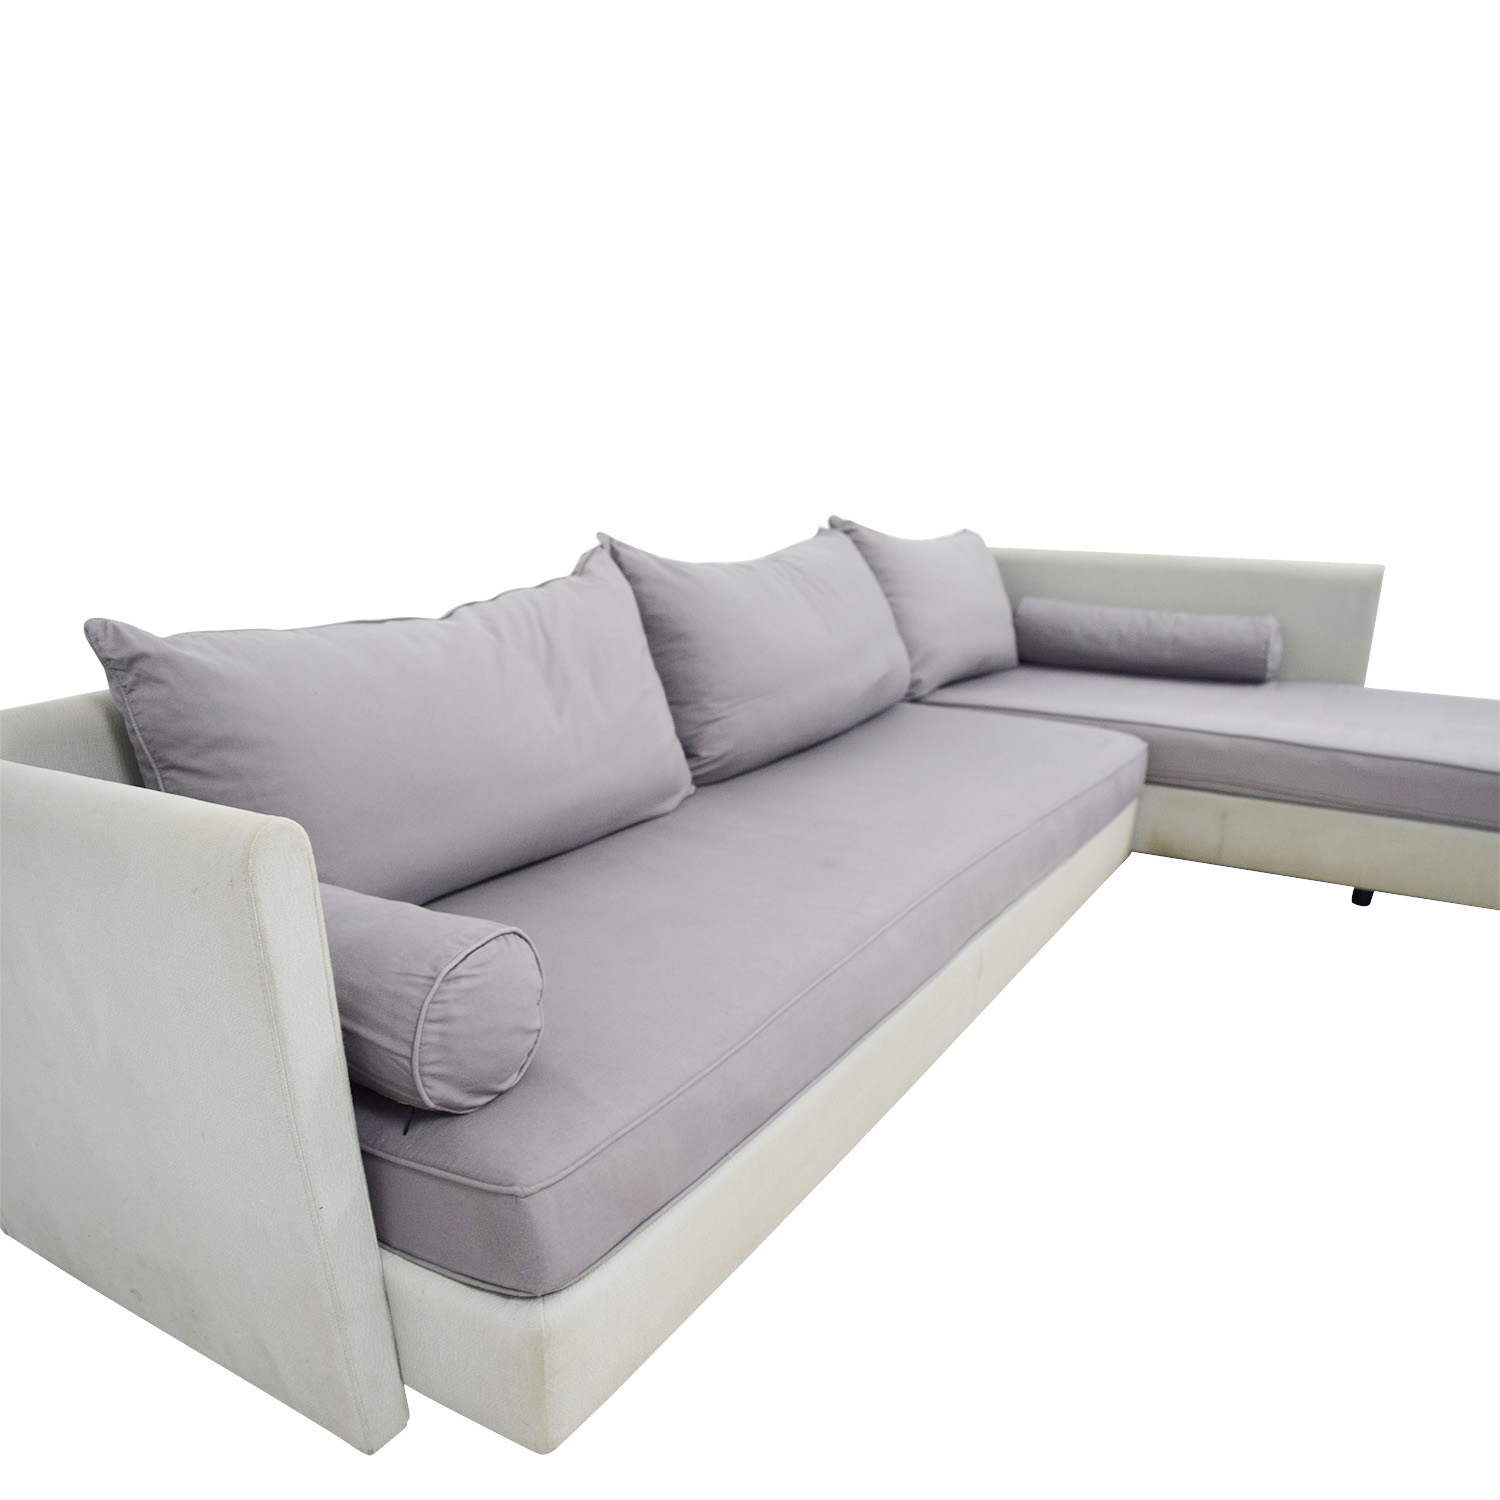 ligne roset sofa beds multy sofa beds designer claude brisson ligne roset thesofa. Black Bedroom Furniture Sets. Home Design Ideas